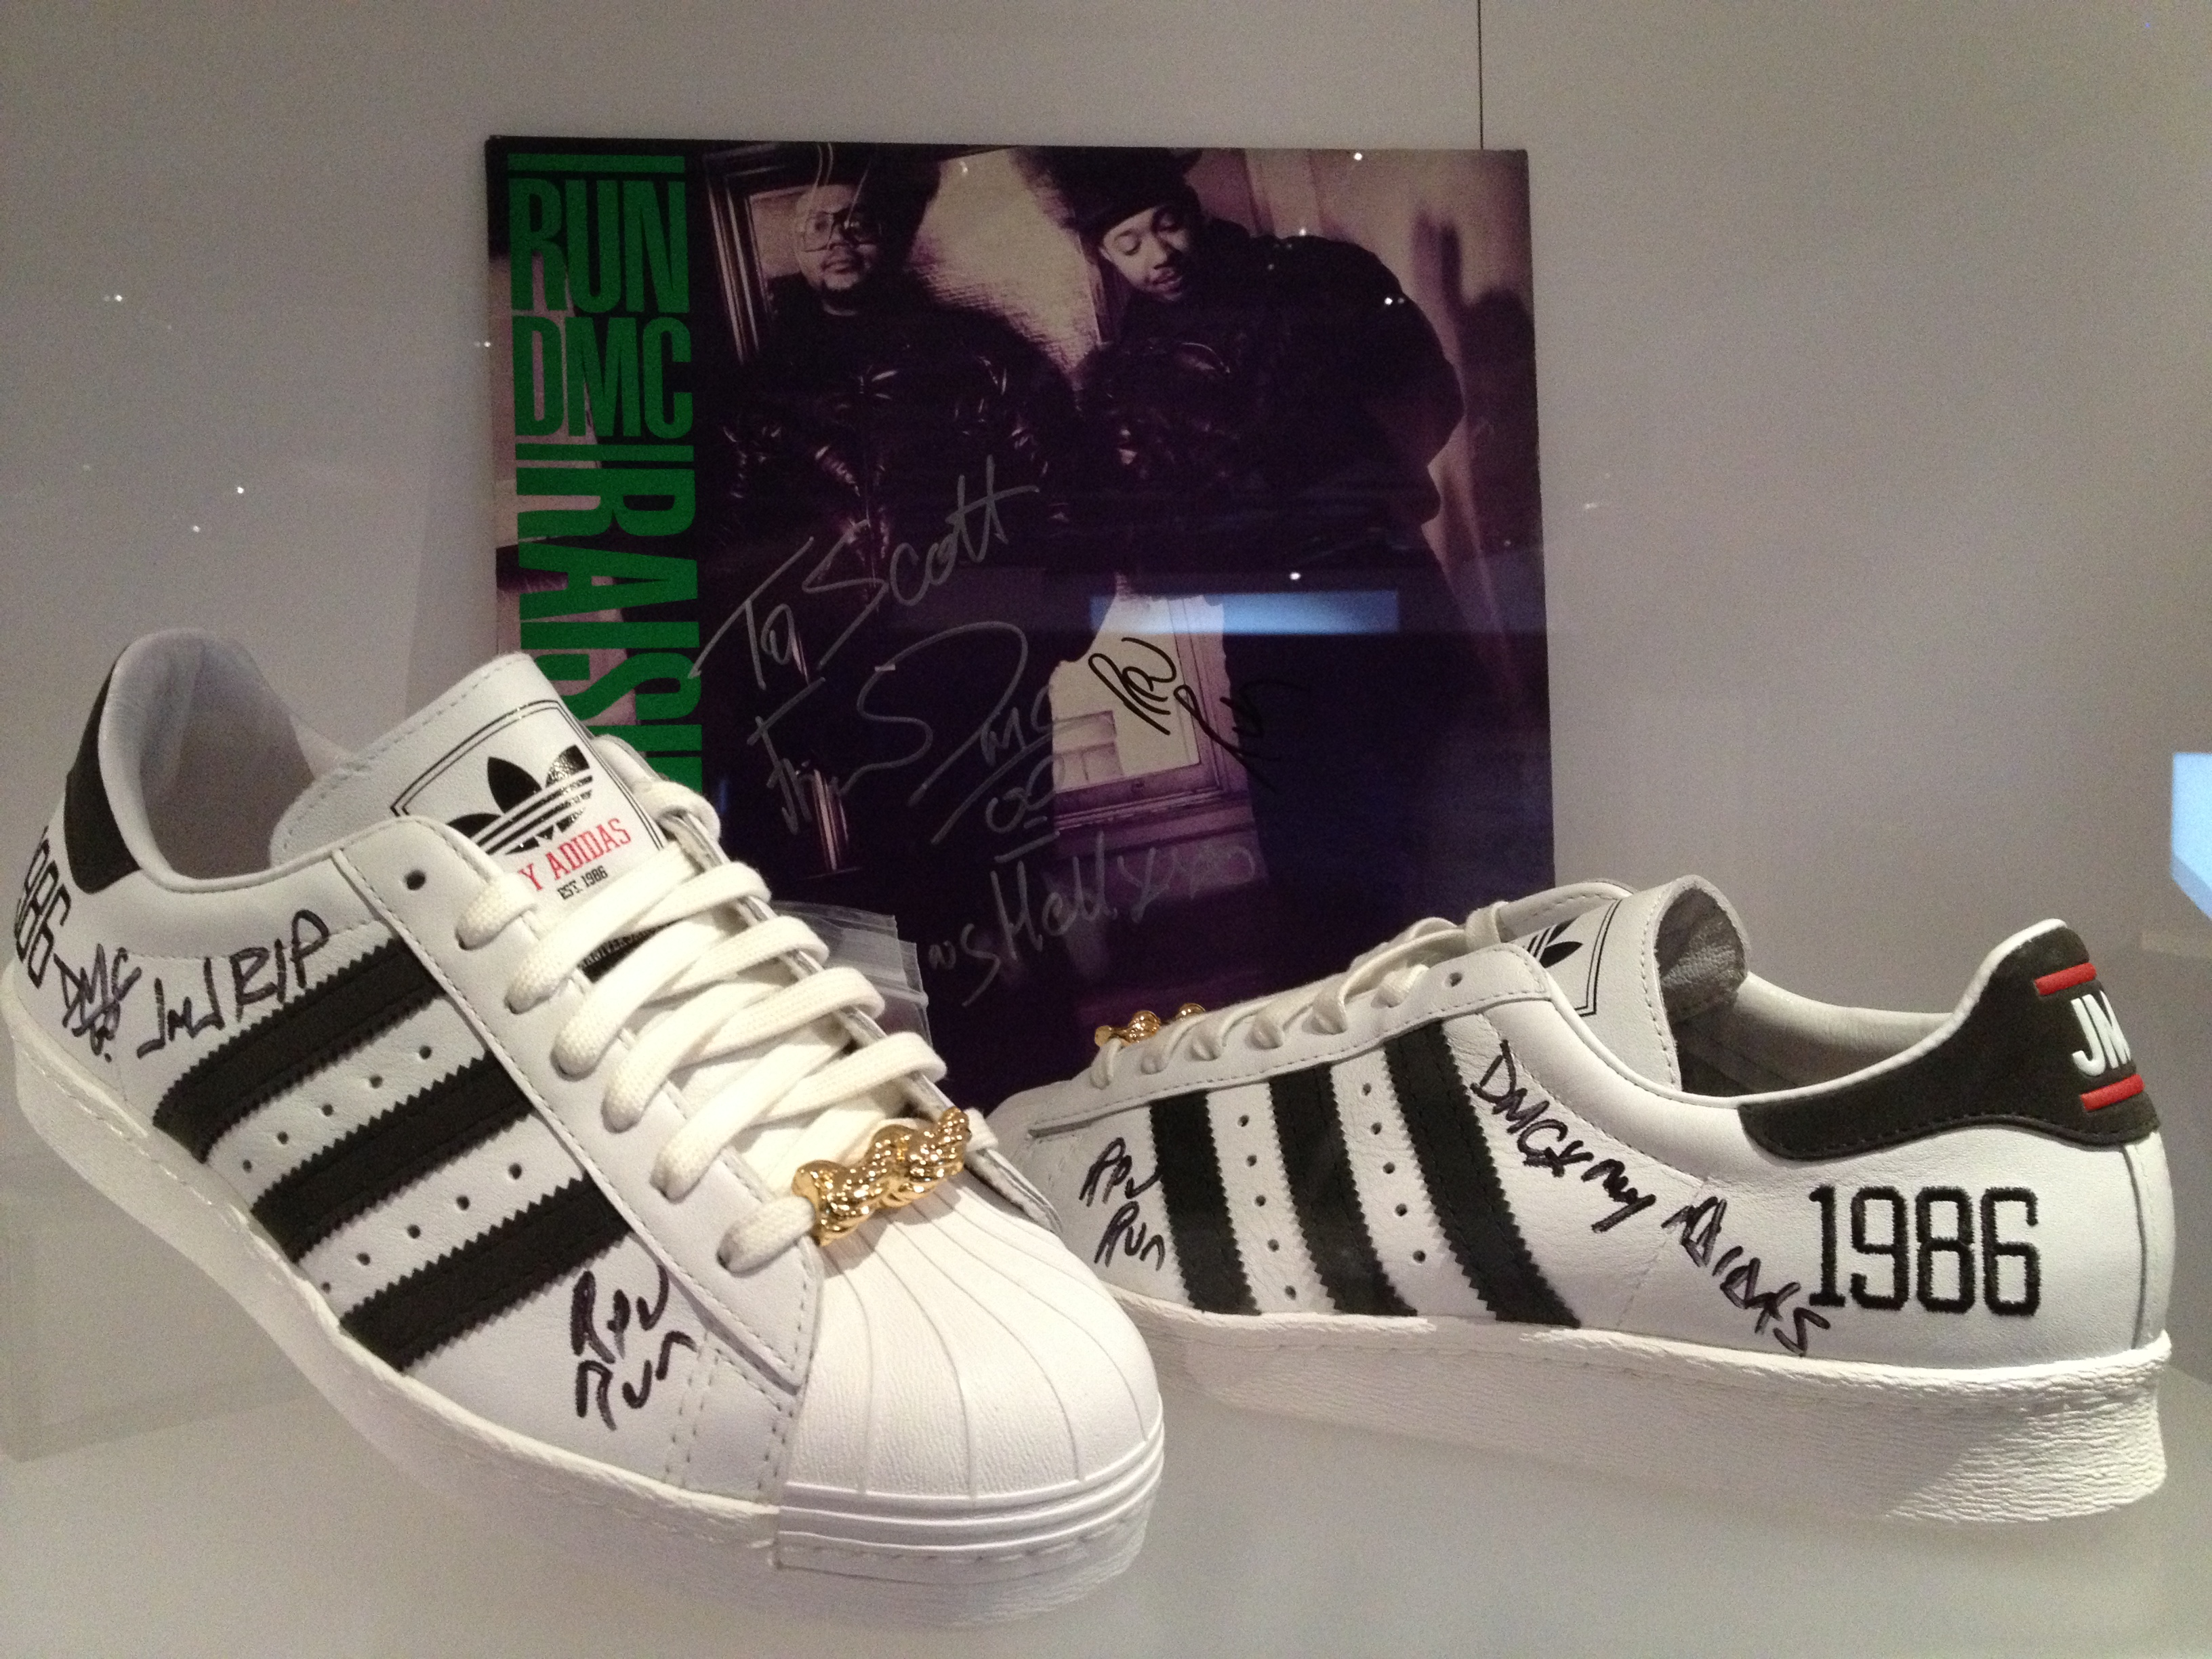 File:Run DMC Adidas.jpg